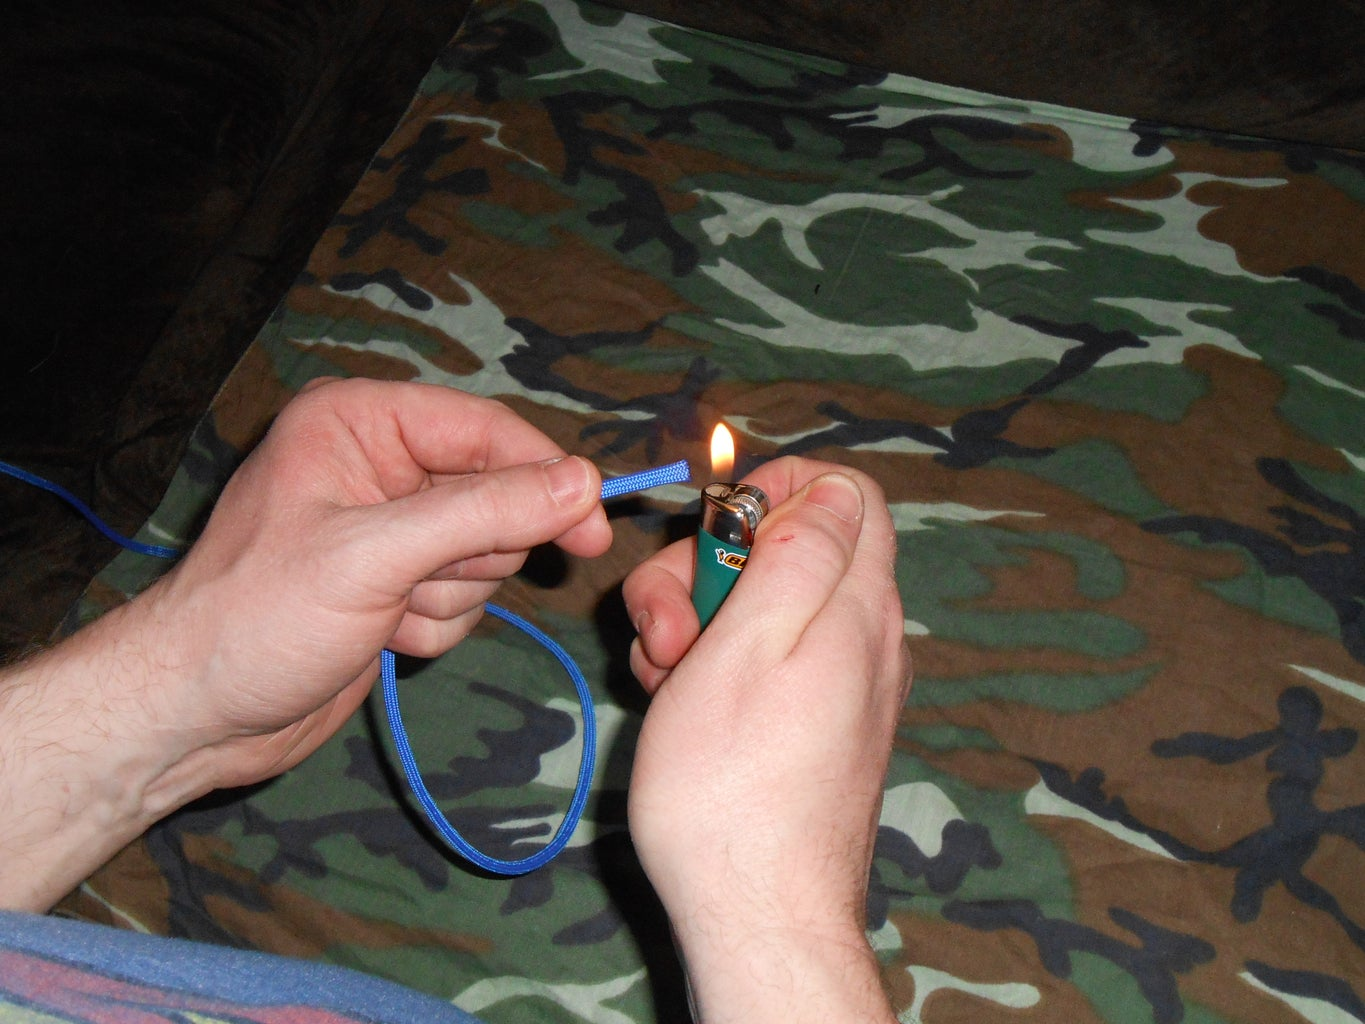 Gutting the Paracord